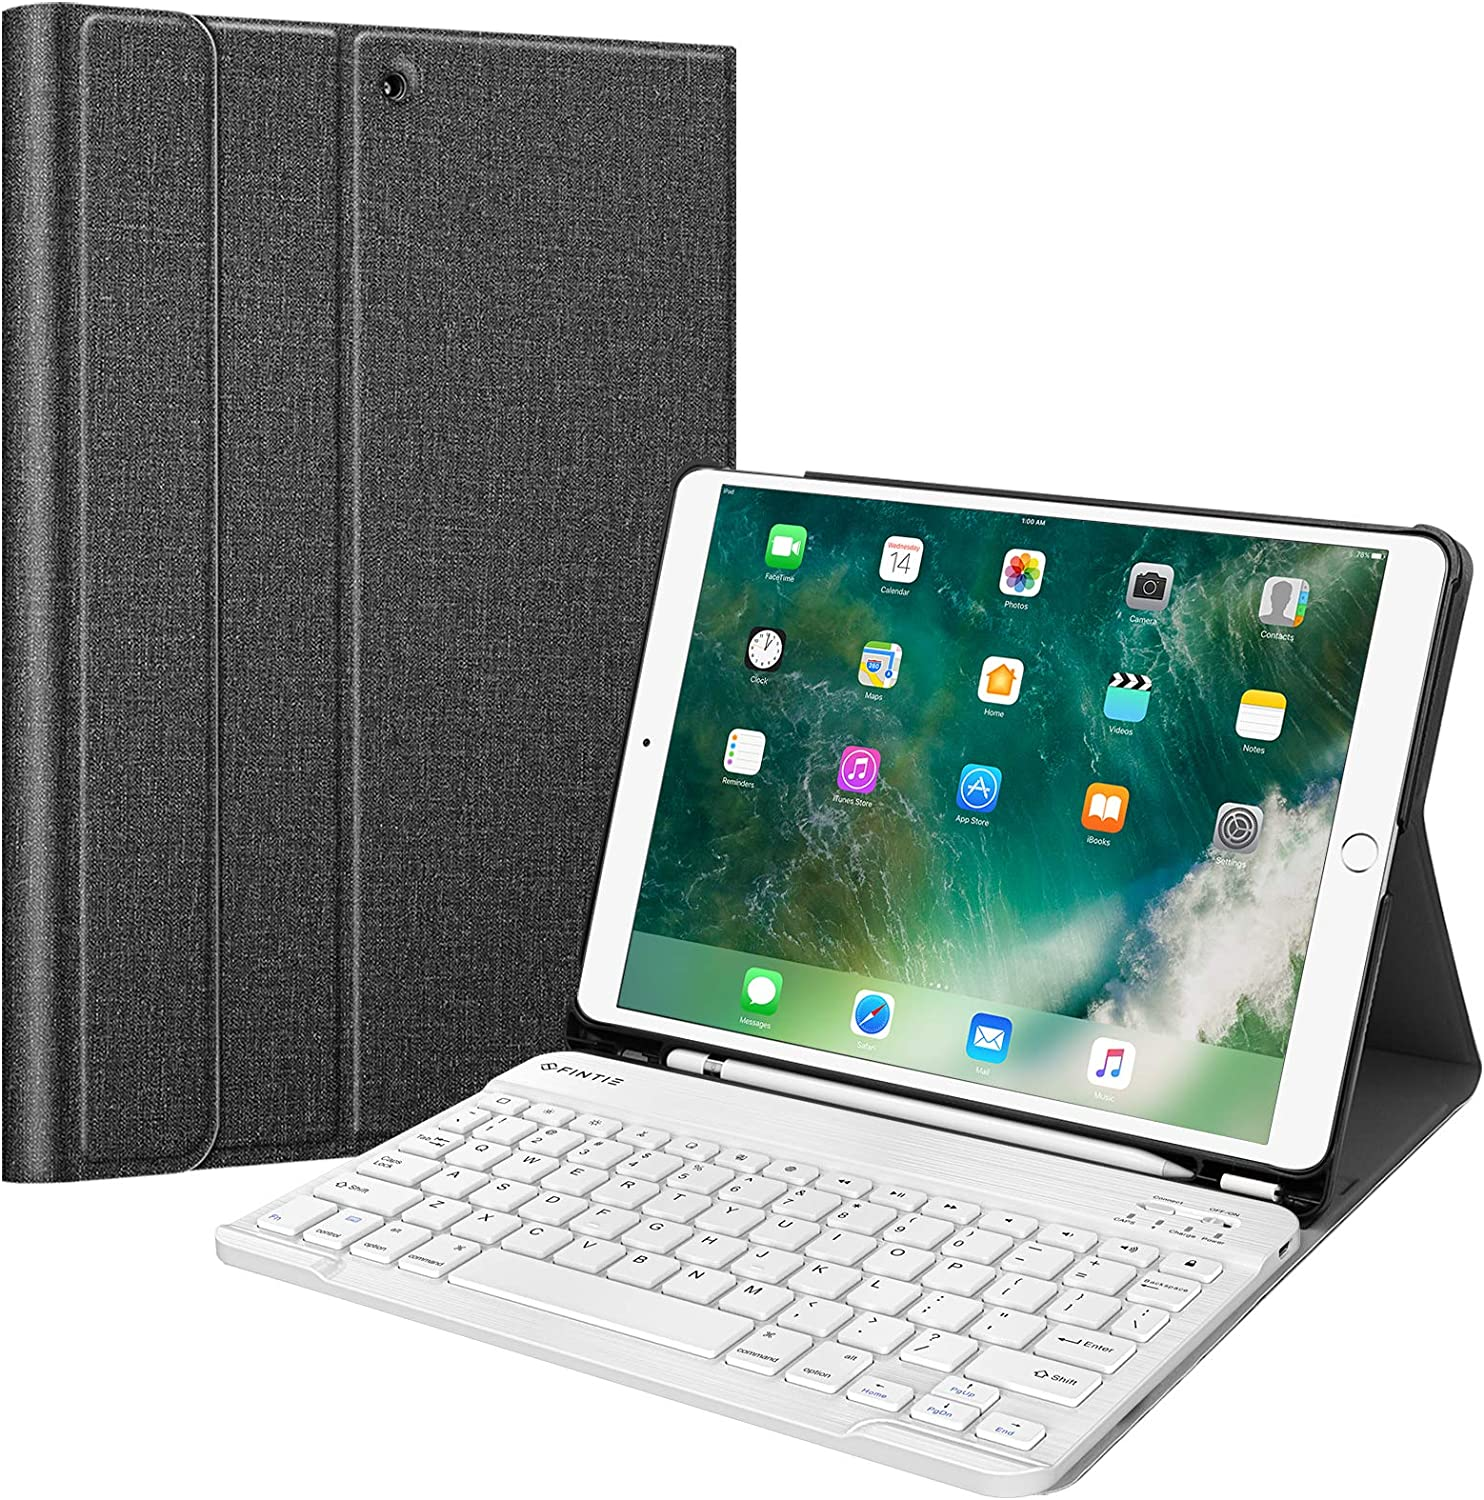 "Fintie Keyboard Case for iPad Air 3rd Gen 10.5"" 2019 / iPad Pro 10.5"" 2017 - SlimShell Stand Protective Cover w/Magnetically Detachable Wireless Bluetooth Keyboard and Pencil Holder, Gray"